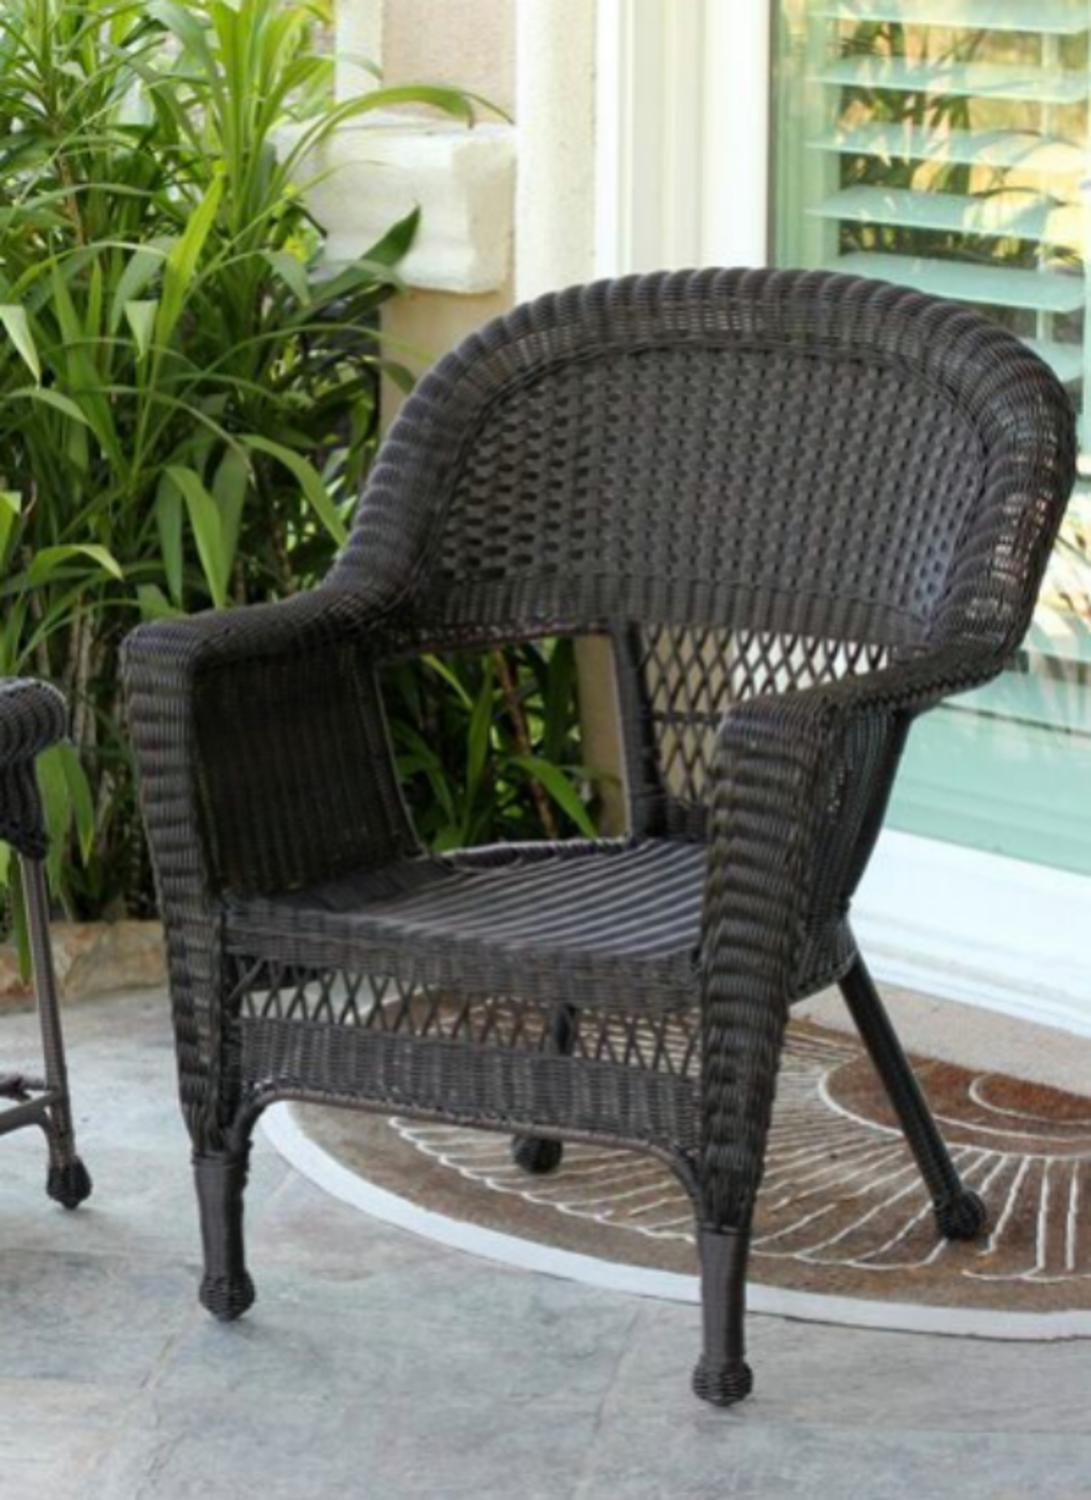 Set of 4 Espresso Brown Resin Wicker Outdoor Patio Garden